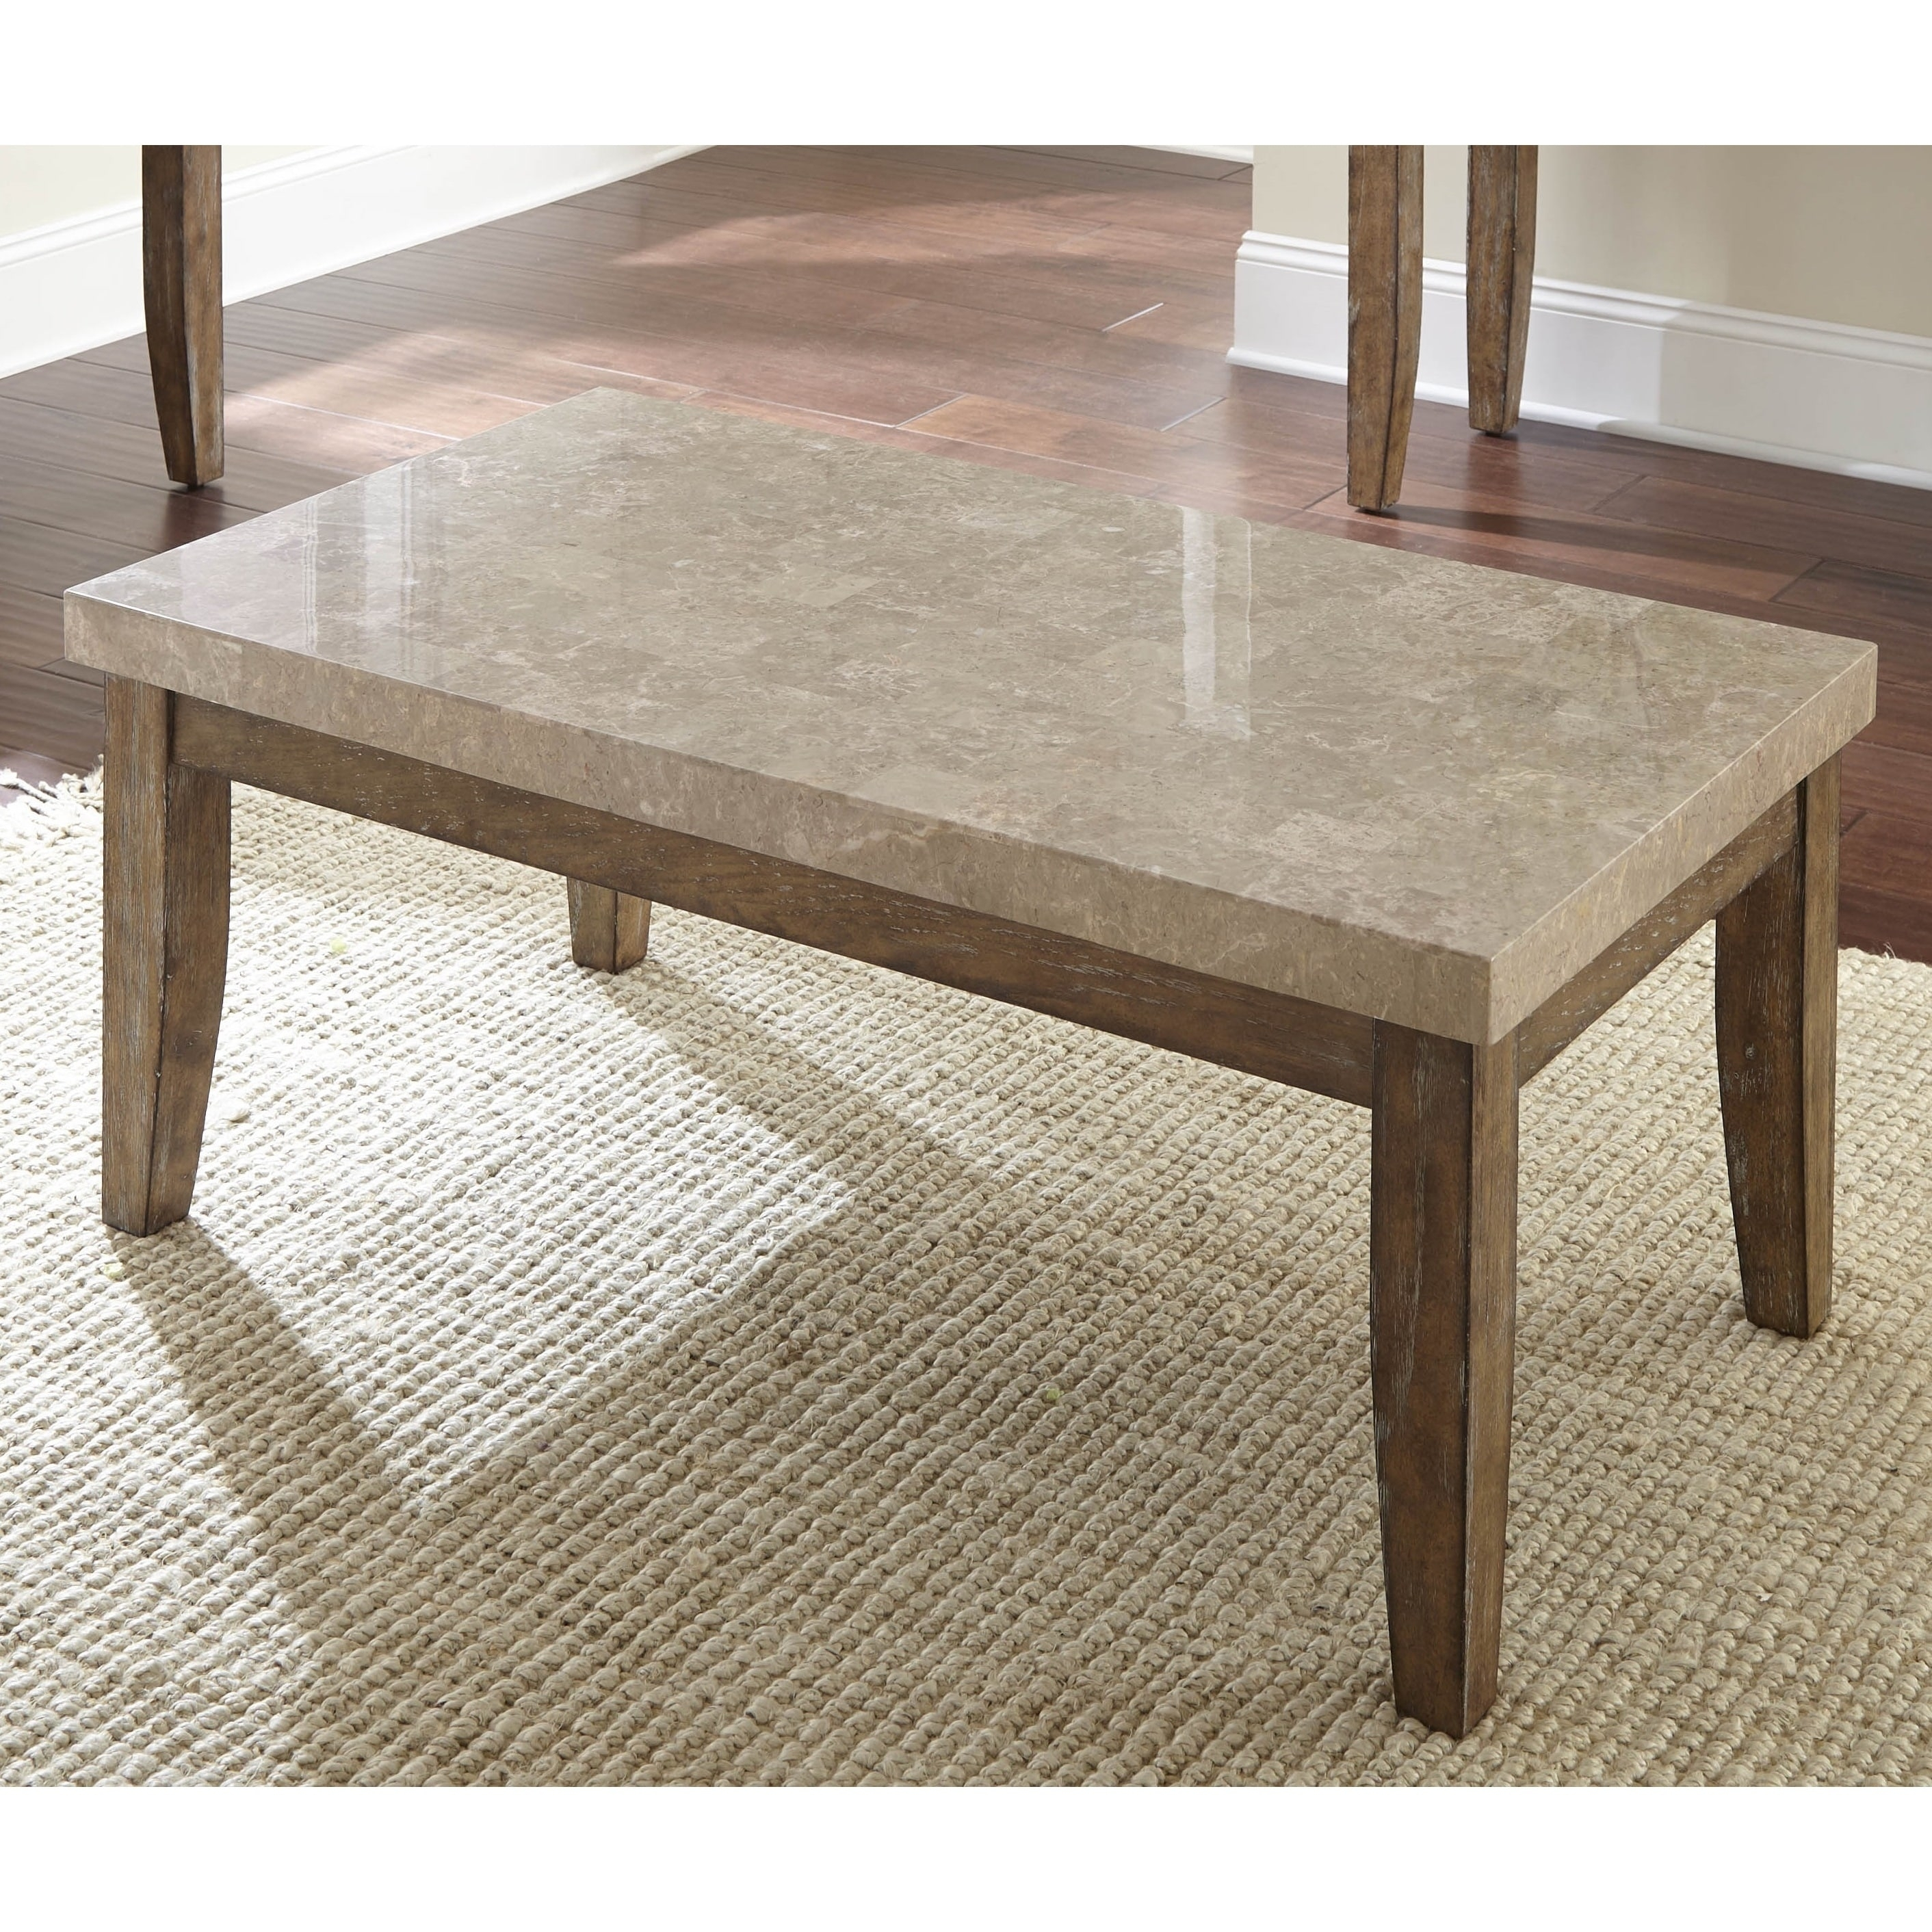 Fulham Marble Top Coffee Tablegreyson Living – Free Shipping Regarding Element Ivory Rectangular Coffee Tables (View 13 of 30)